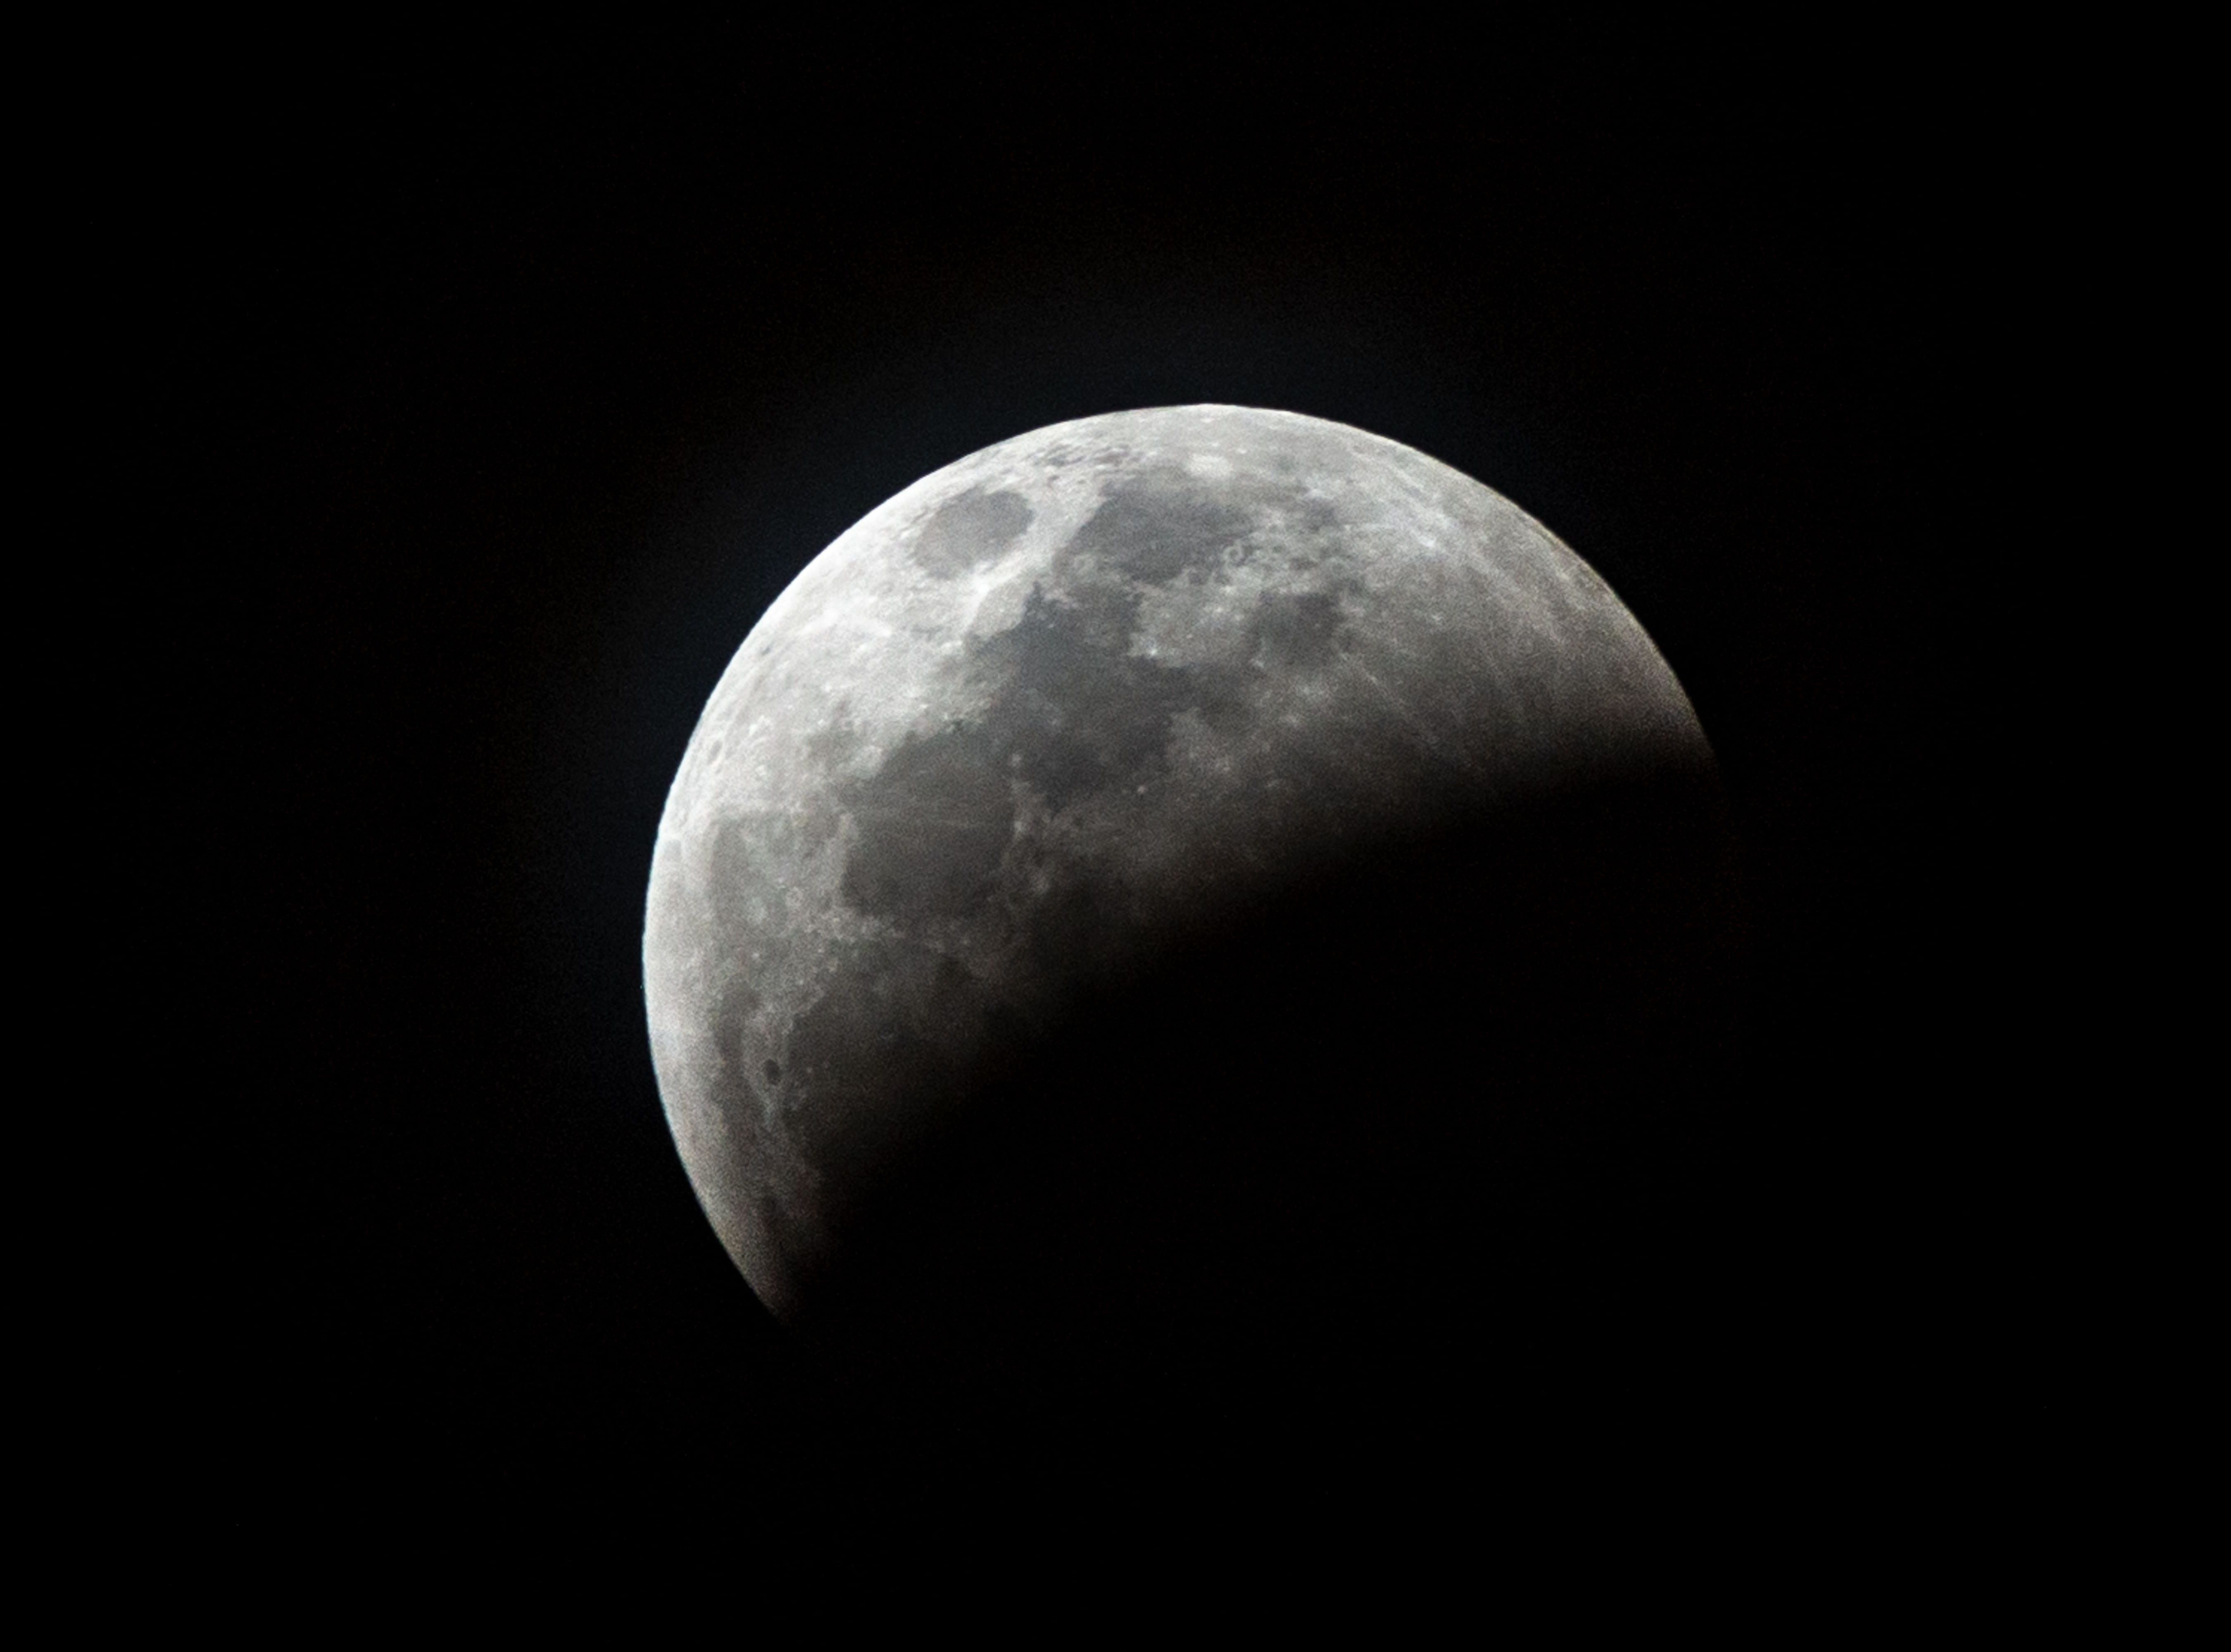 The so-called Super Blood Wolf Moon rises as a total lunar eclipse enters a partial phase where almost half of the Moon is immersed in Earth's unbra, on Sunday January 20, 2019, in Miami, Florida. - The January 21 total lunar eclipse will be the last one until May 2021, and the last one visible from the United States until 2022. (Photo by Gaston De Cardenas / AFP)GASTON DE CARDENAS/AFP/Getty Images